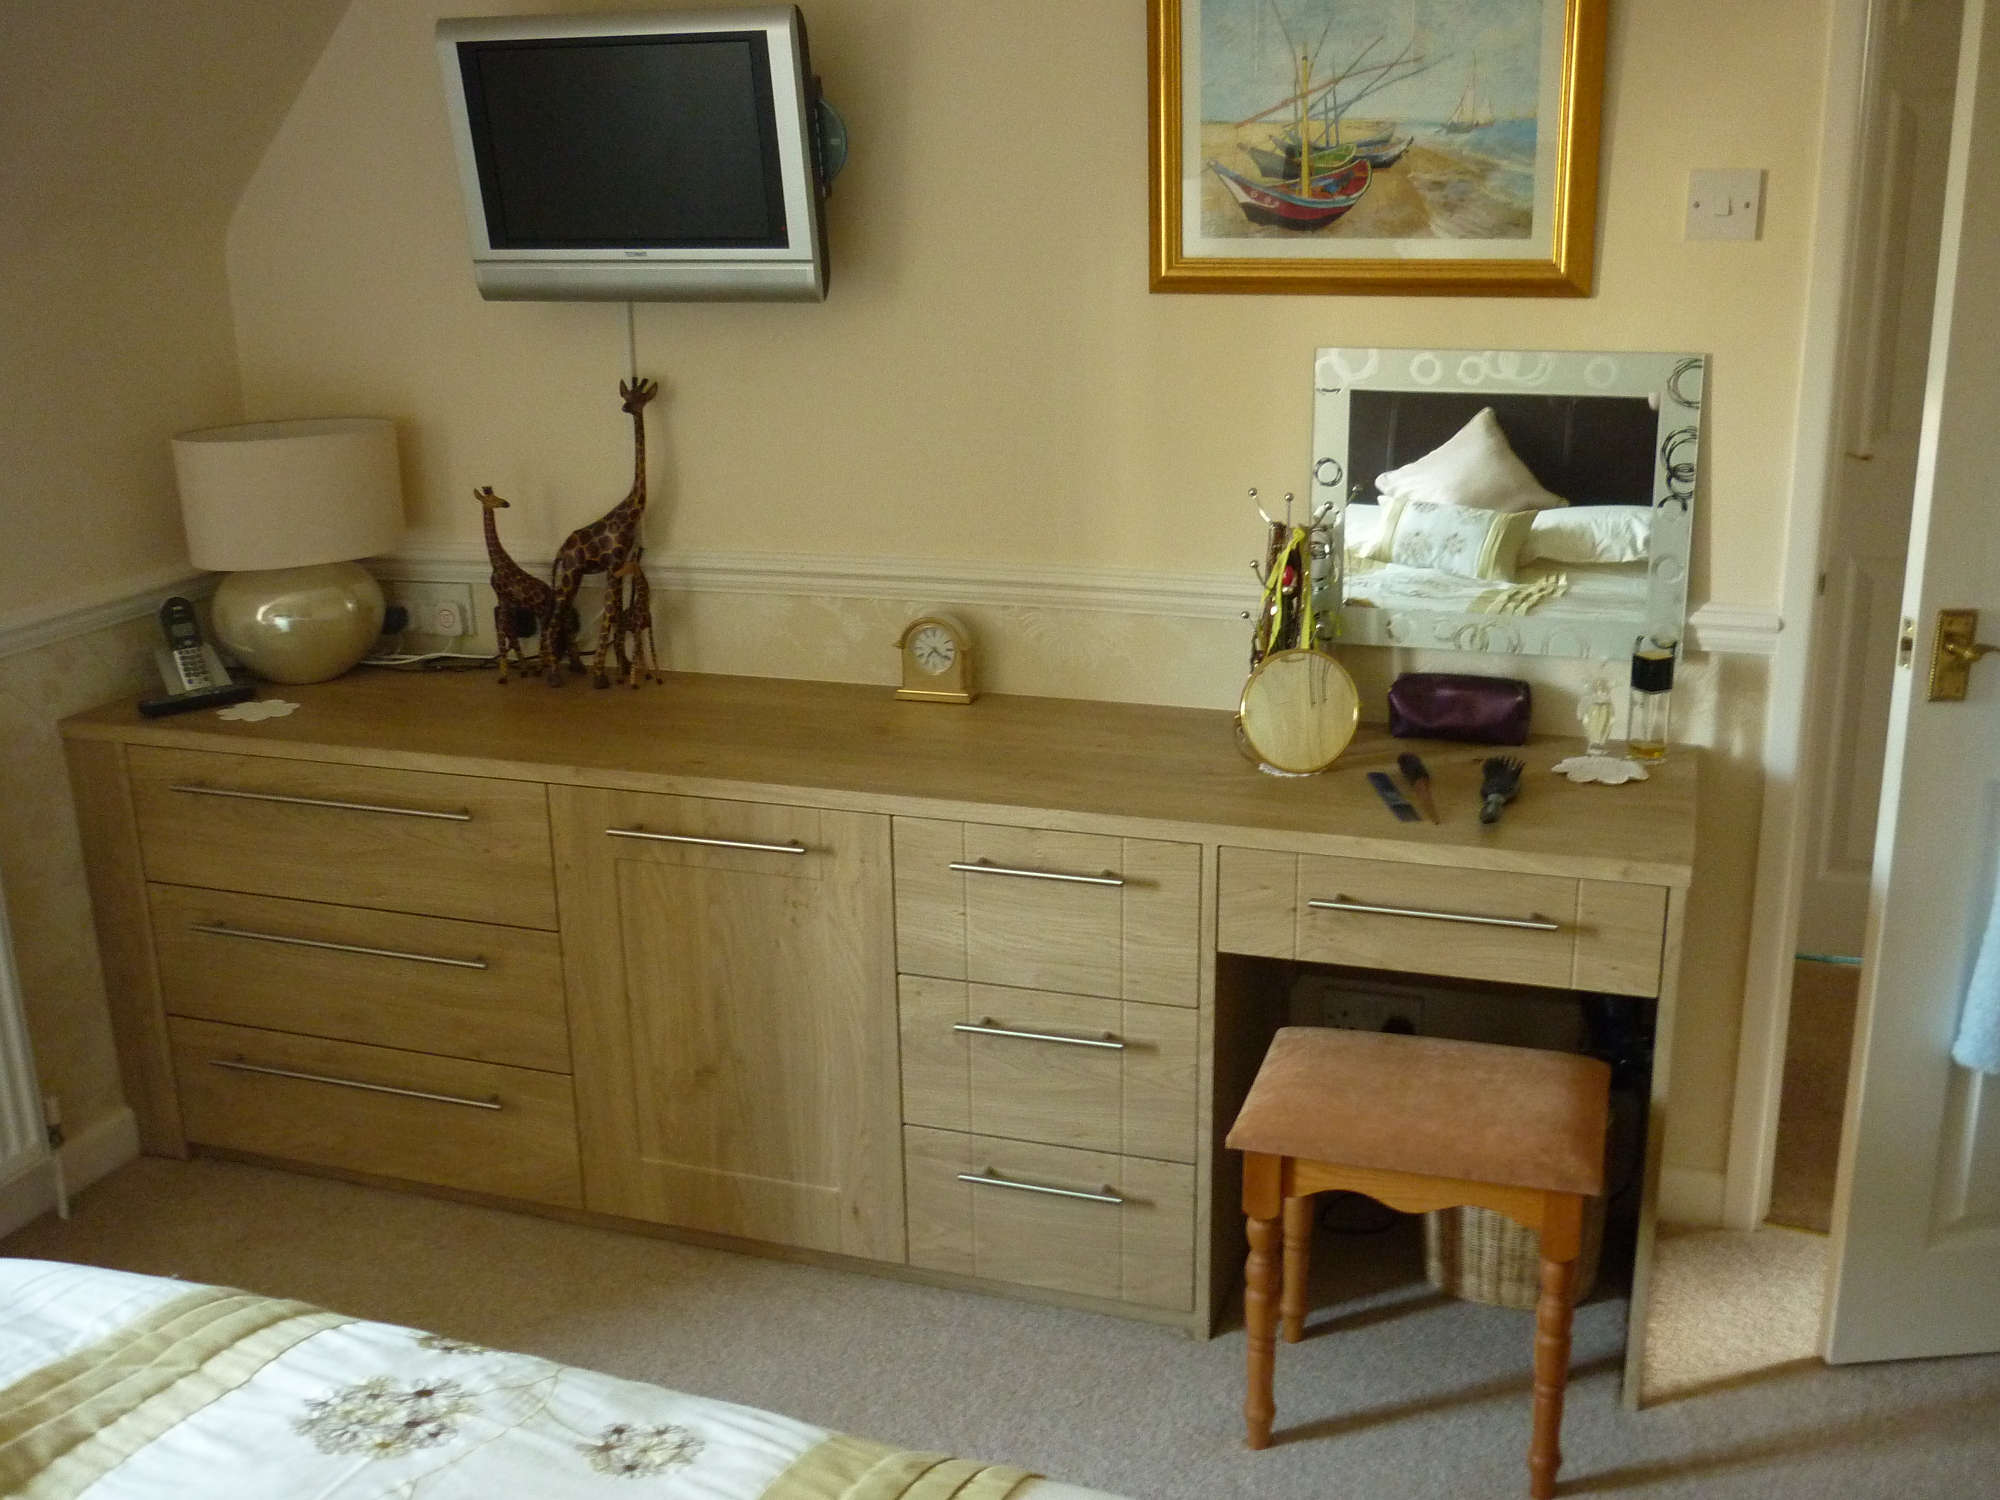 Handmade Bespoke Furniture From PW Joinery & Cabinet Makers